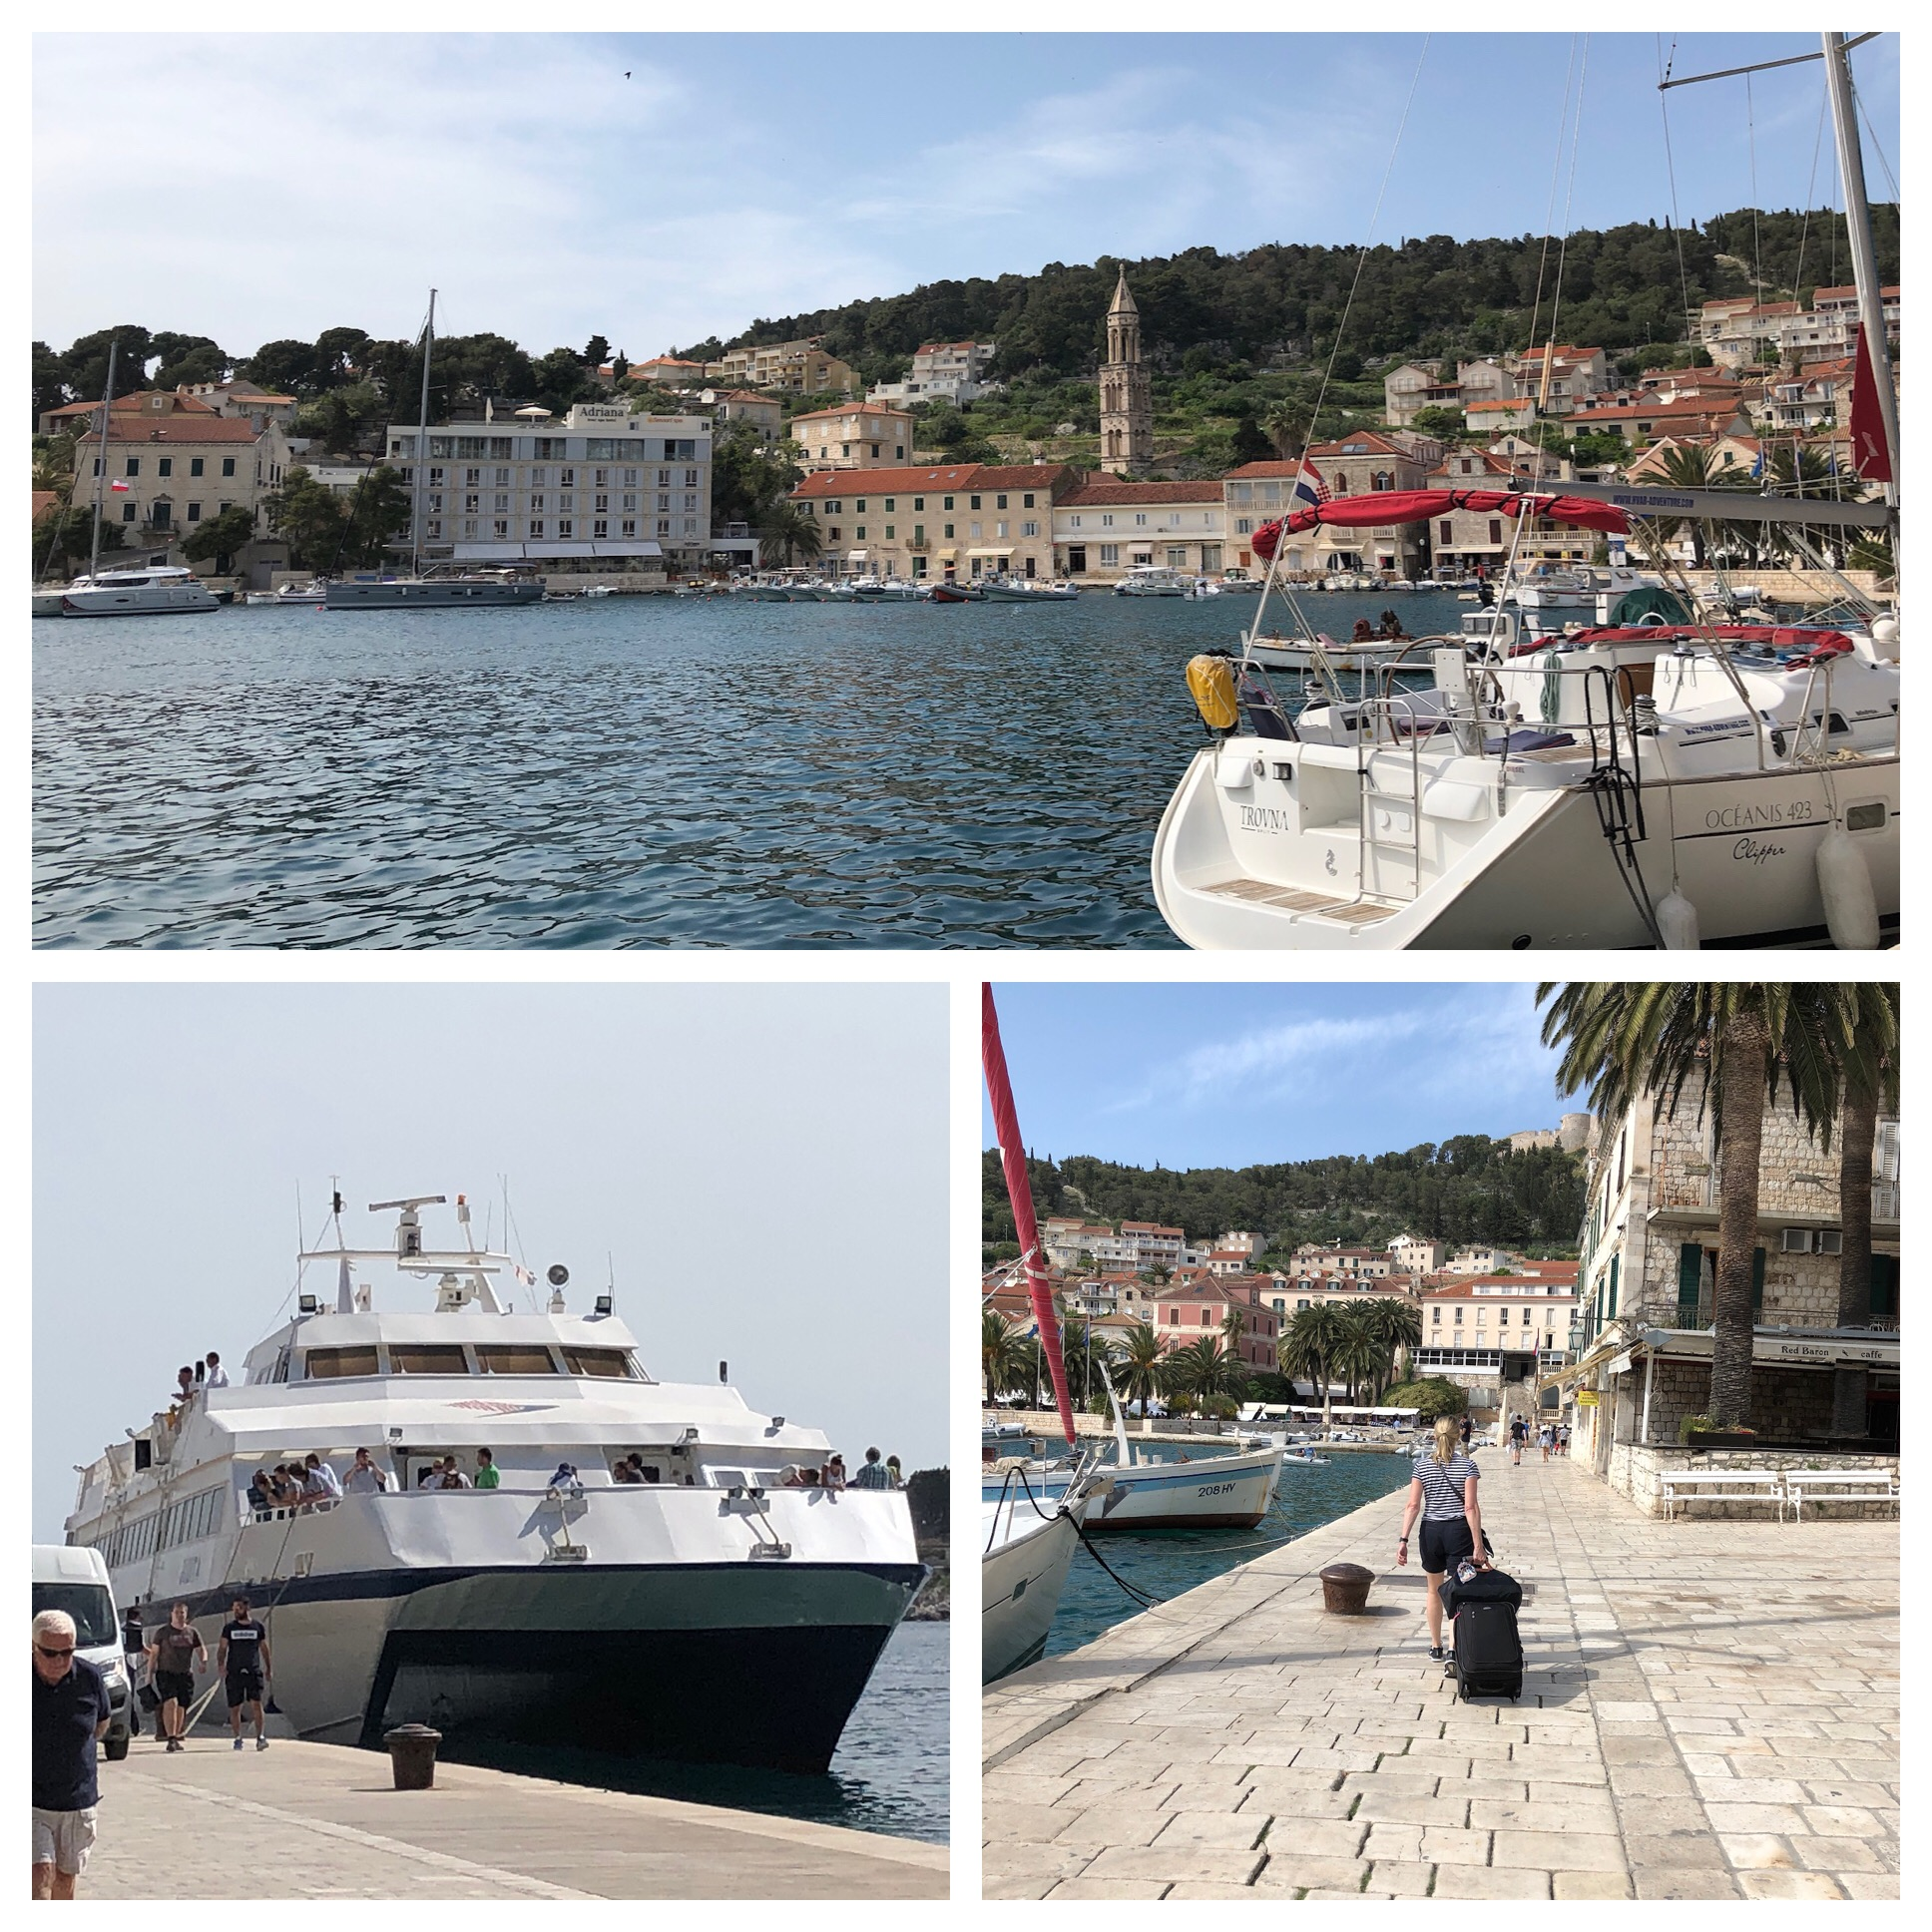 Our boat and first look at the harbor in Hvar. That's Julie lower right hauling her stuff. Remember we're traveling pretty light. Just a carry on and a personal item. Good thing because you are on your own with luggage.